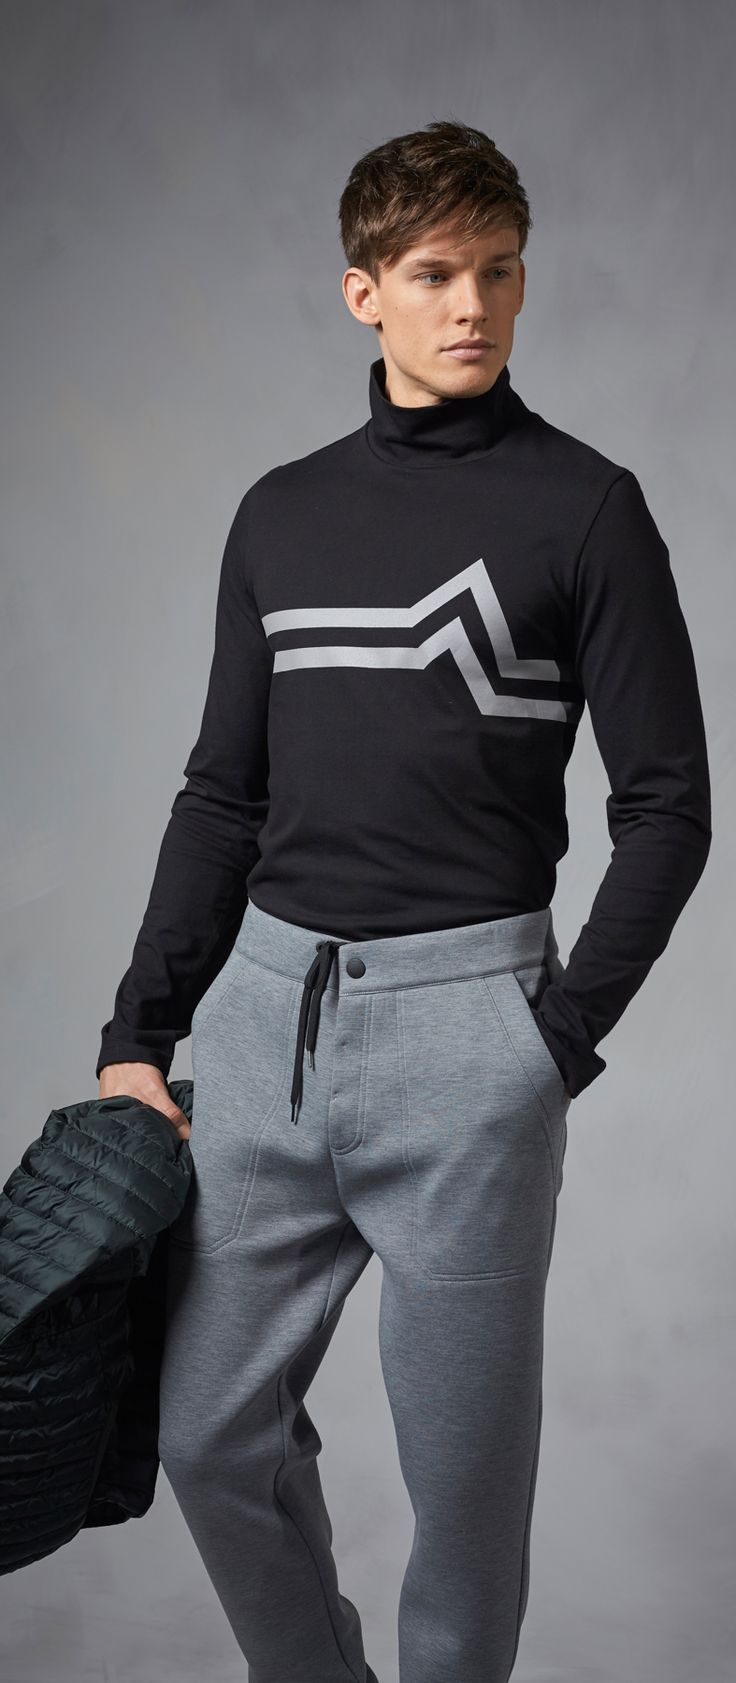 Feel the heartbeat of the mountains: the edgy, simple line design on this state of the art base layer from Bogner Fire + Ice is reminiscent of the ECG reading, and it's definitely got our hearts beating for ski season.